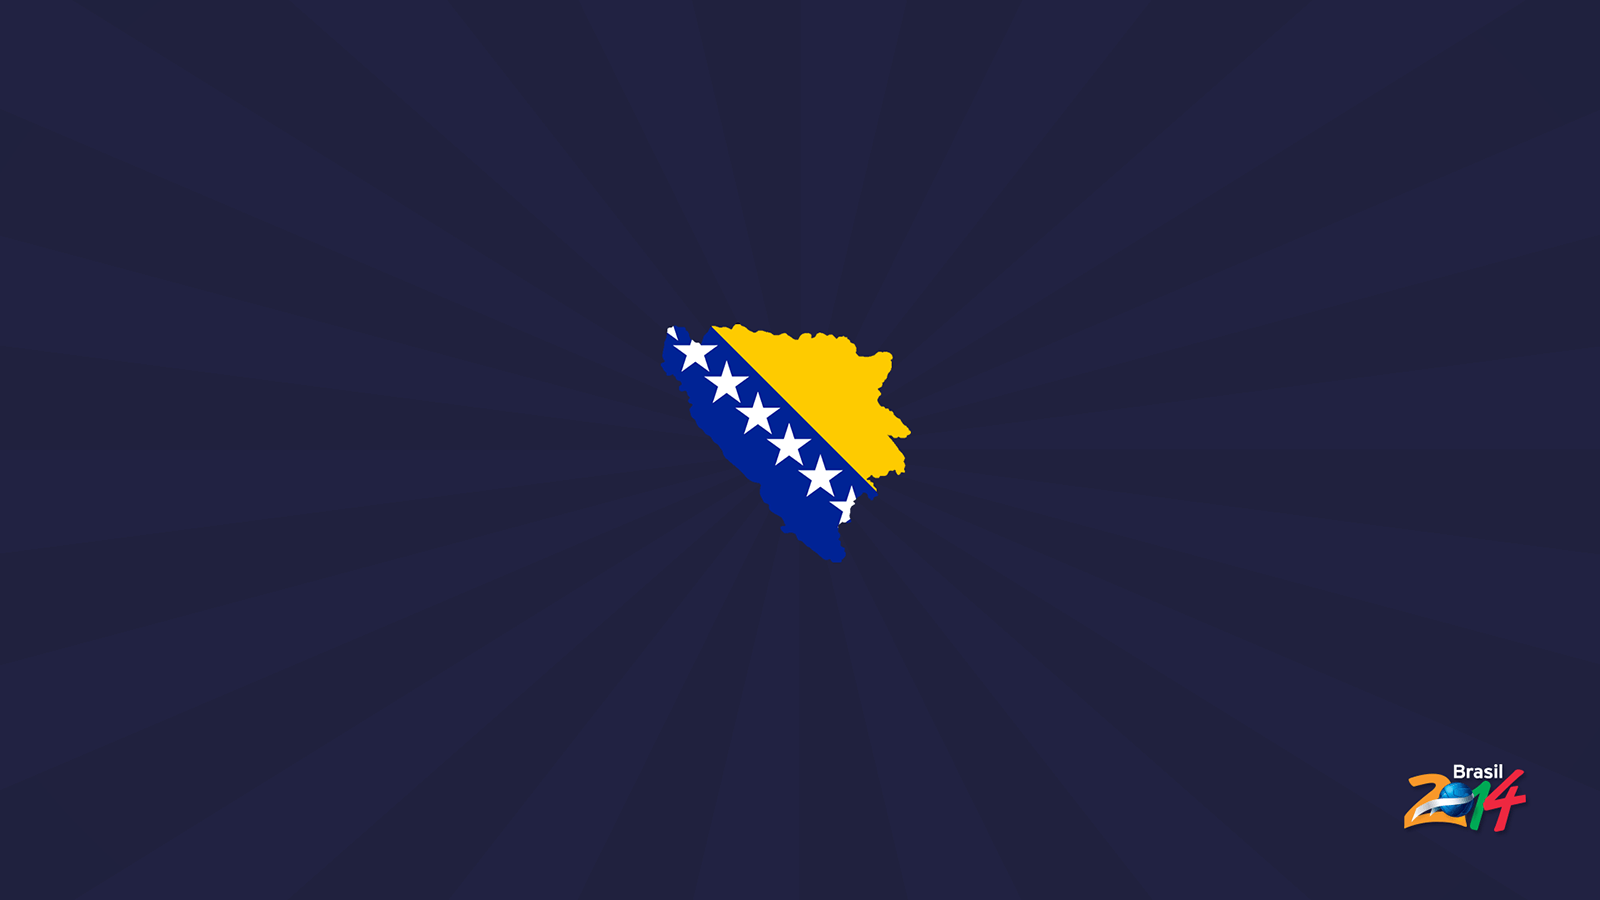 Bosnia Wallpaper (60+), Find HD Wallpapers For Free